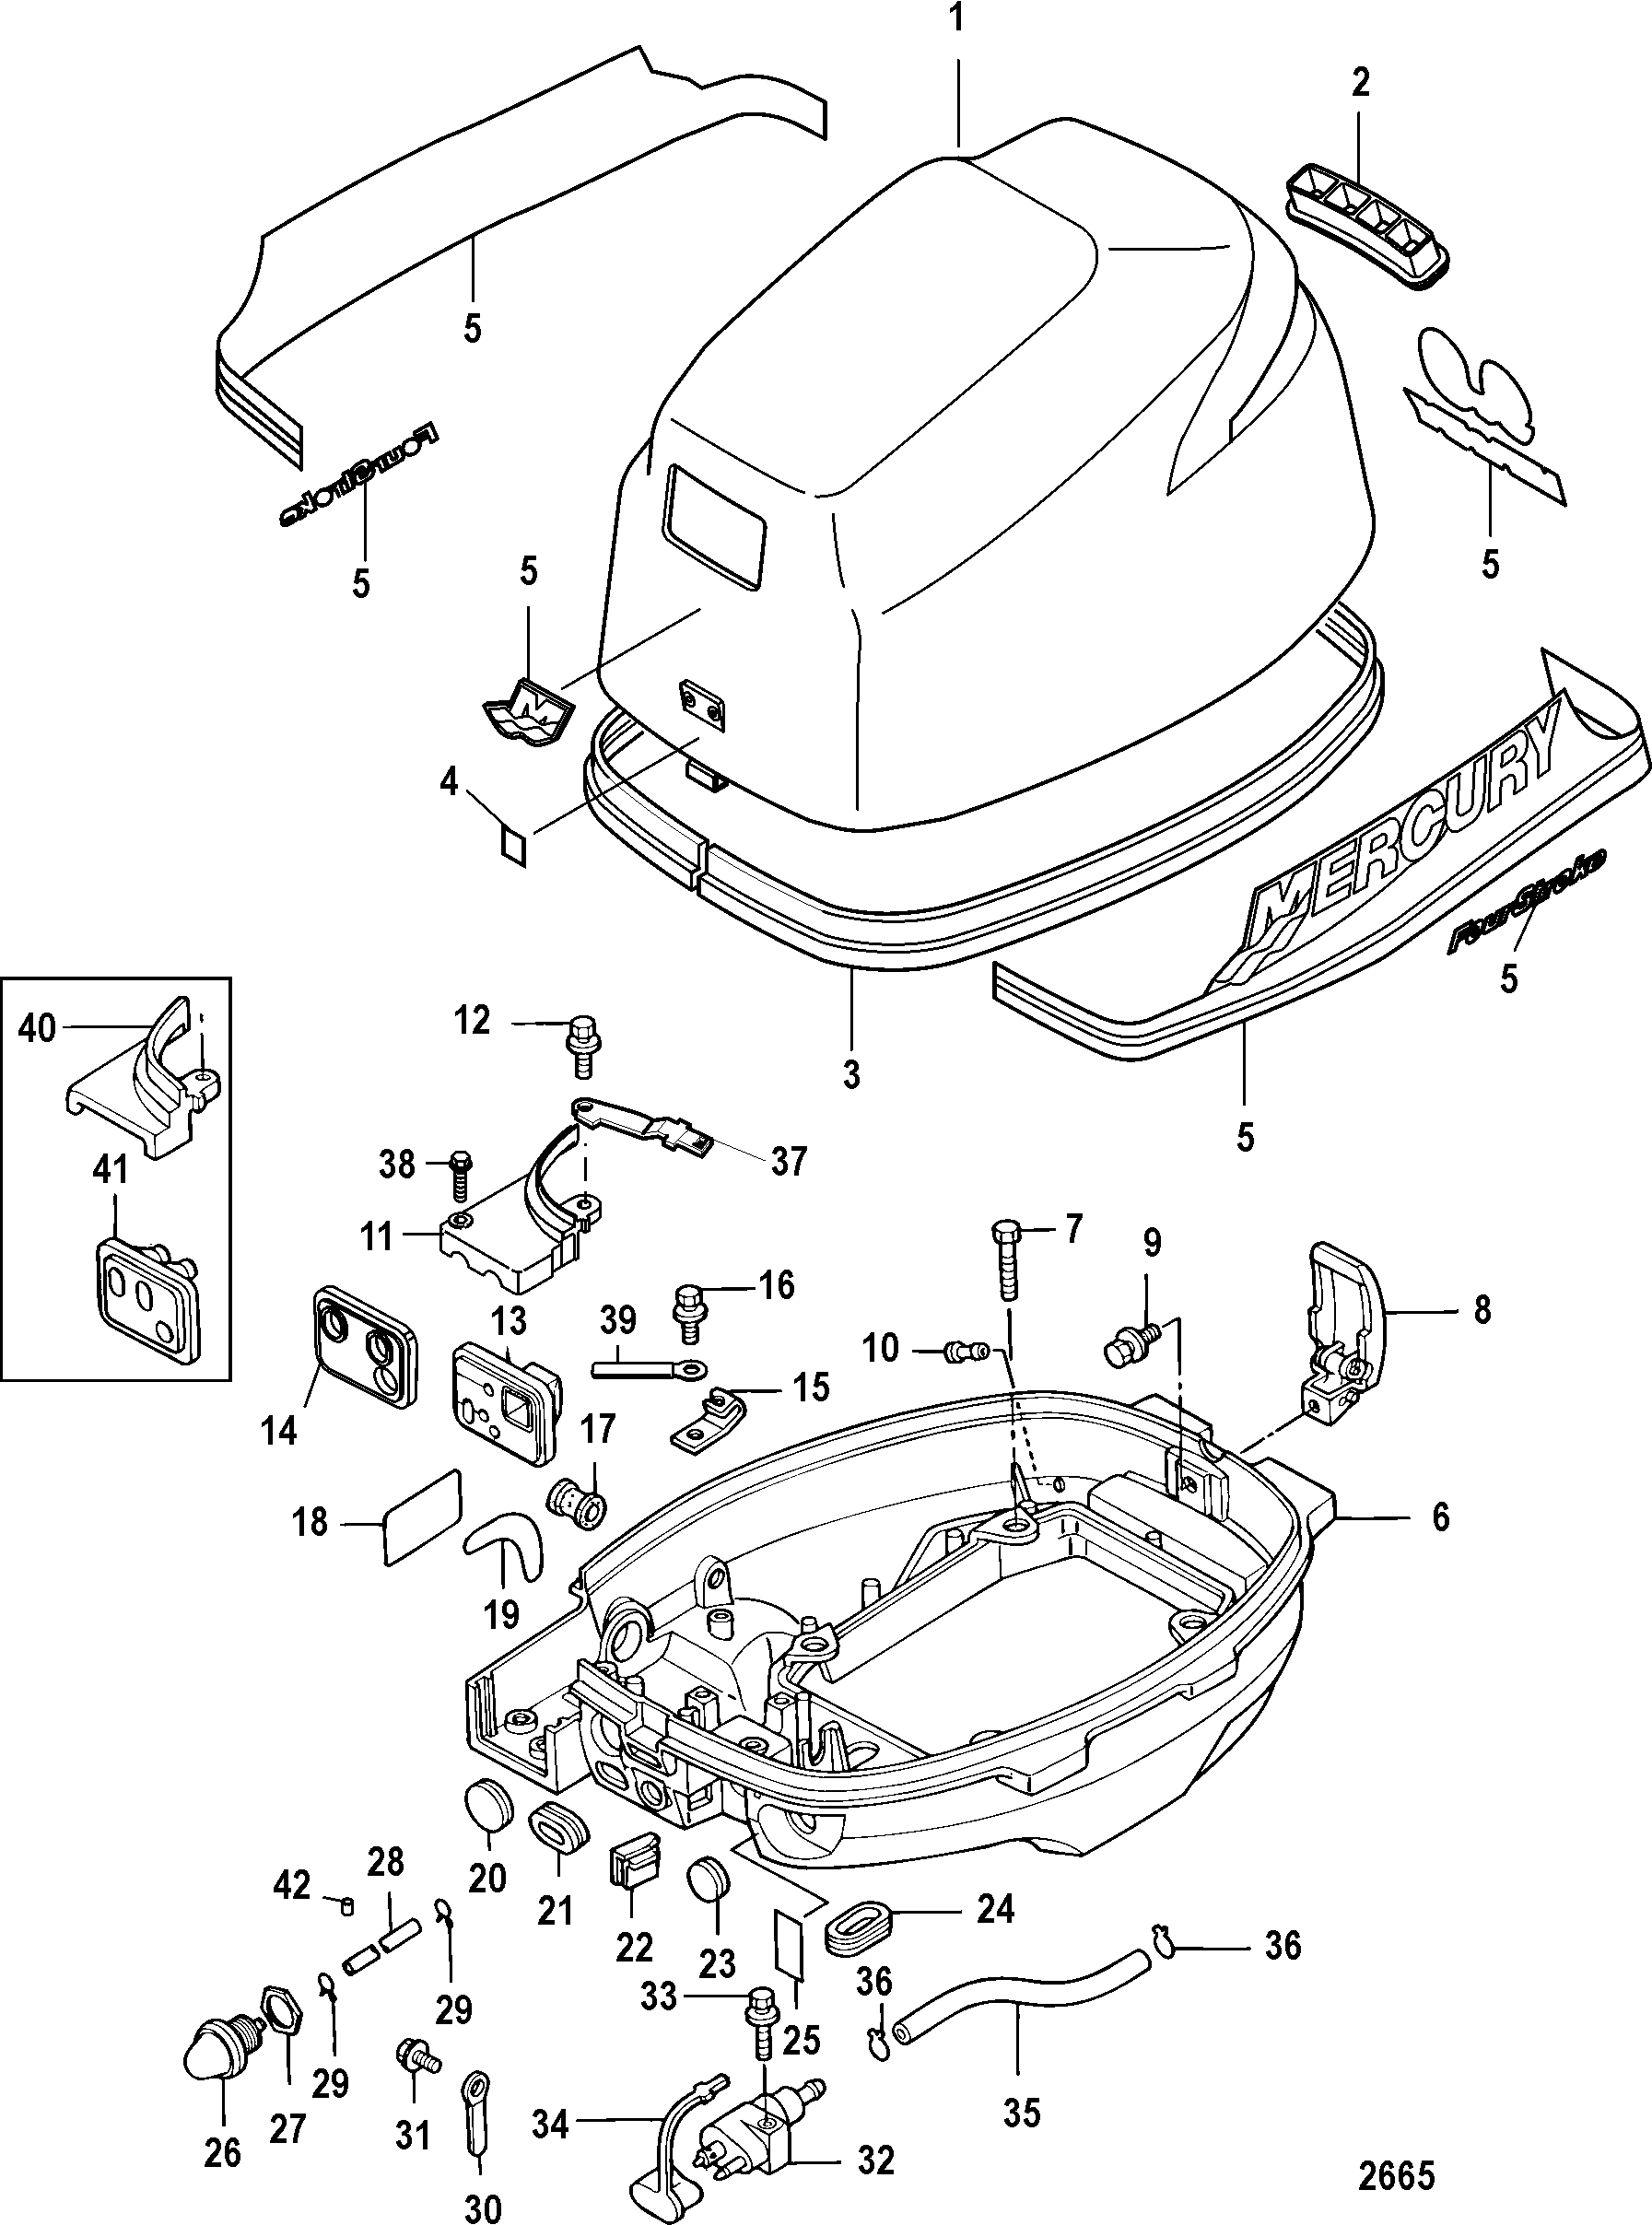 on 35 Hp Johnson Outboard Parts Diagram